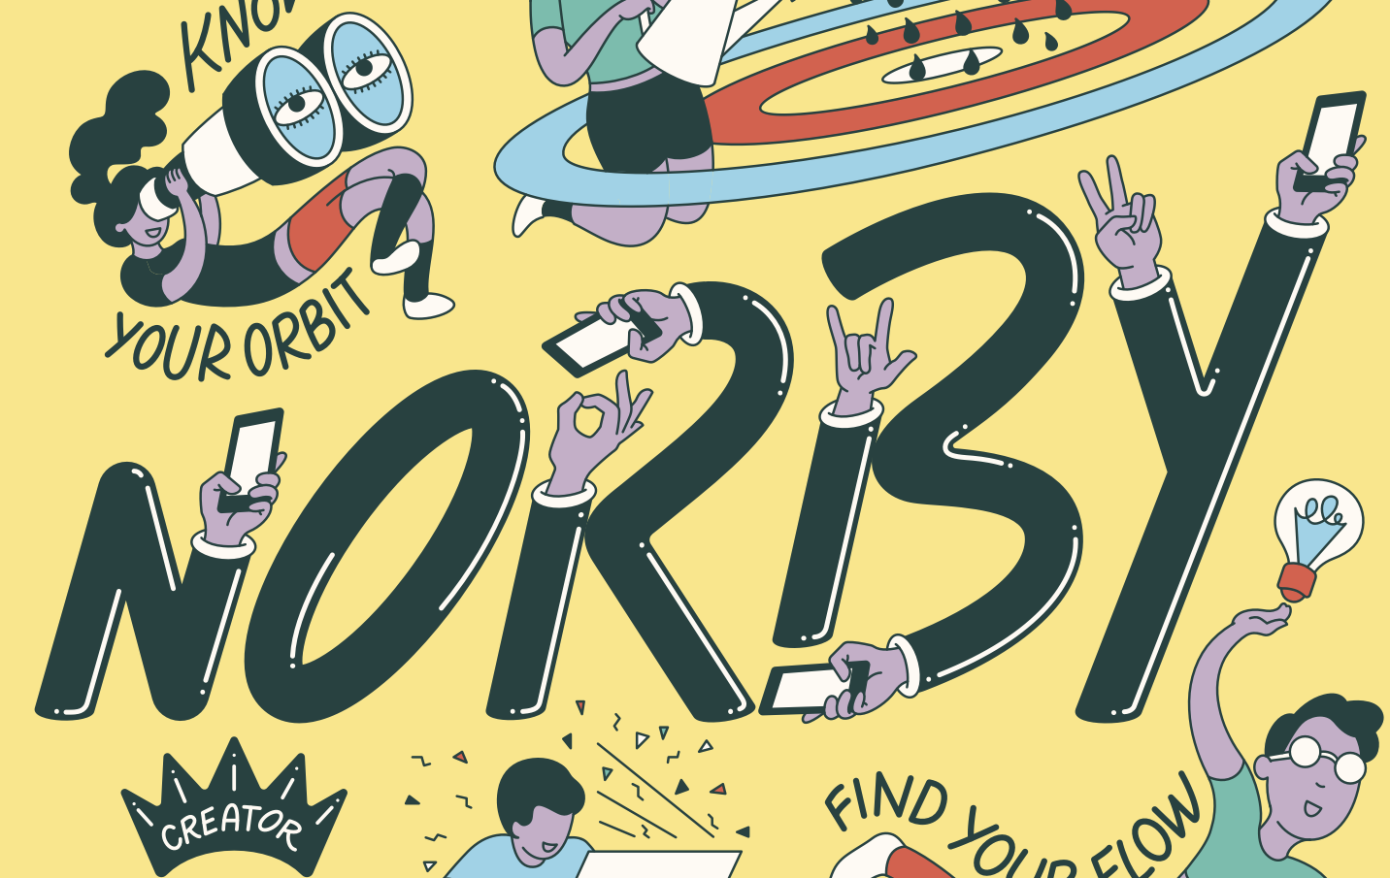 Norby Raises $3.8M For An All-In-One Creator Marketing Platform